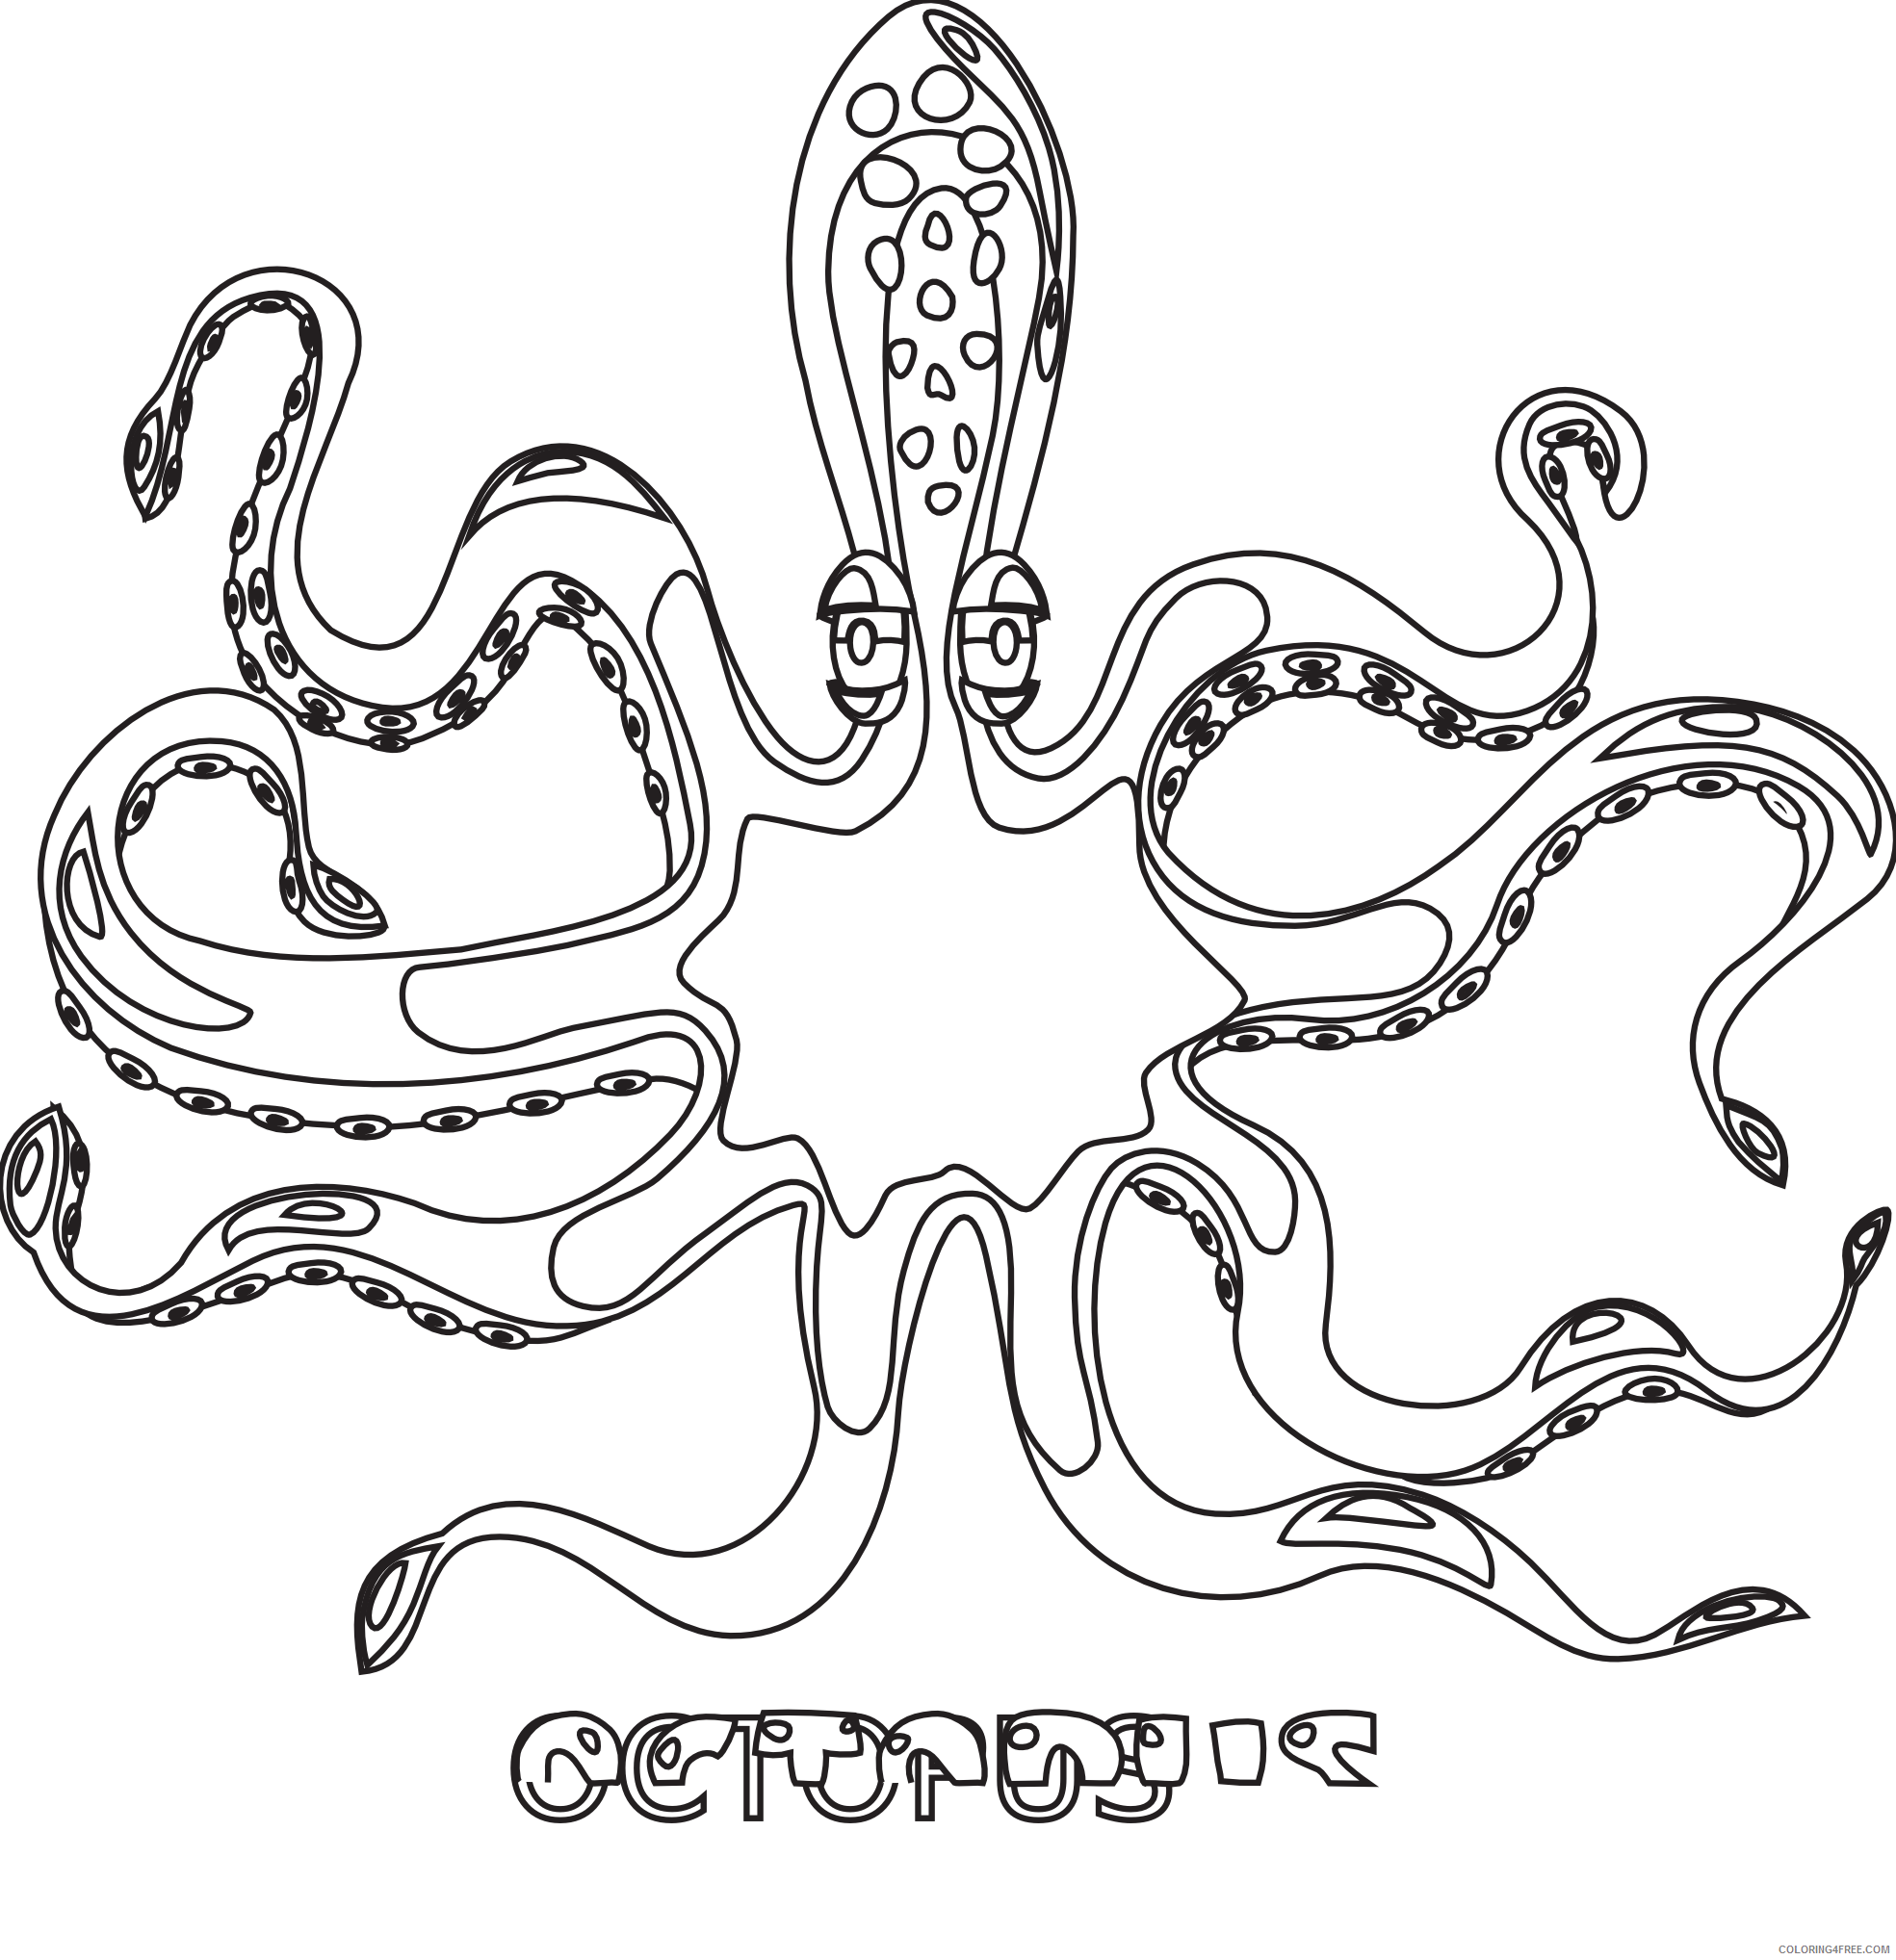 Octopus Coloring Book Coloring Pages octopus black white line art Printable Coloring4free